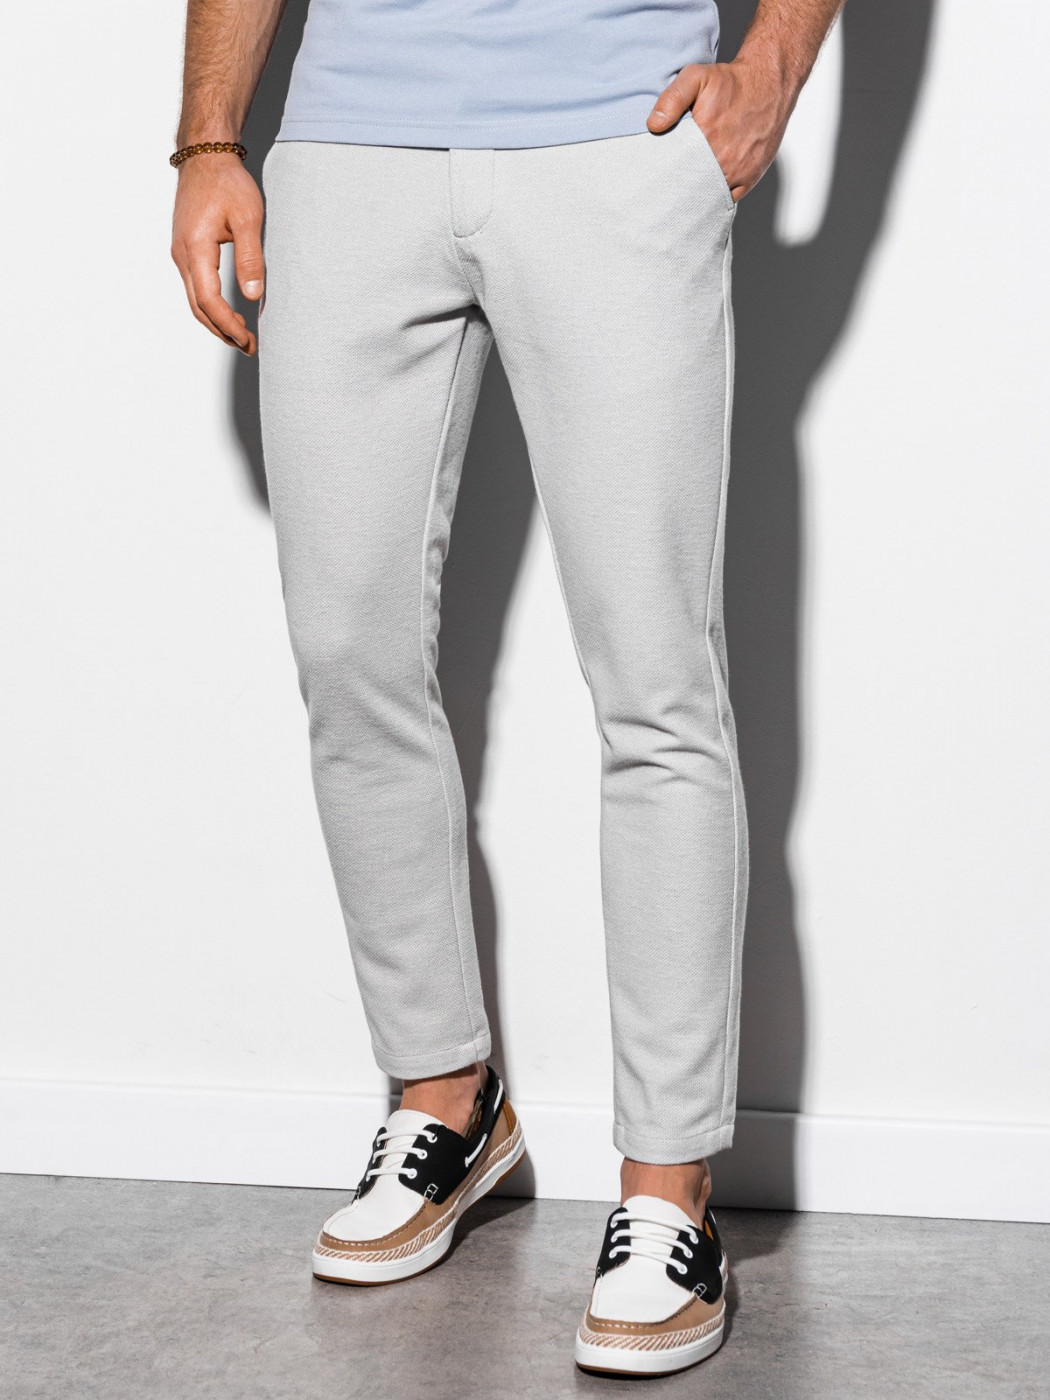 Men's pant Ombre P891 Chino